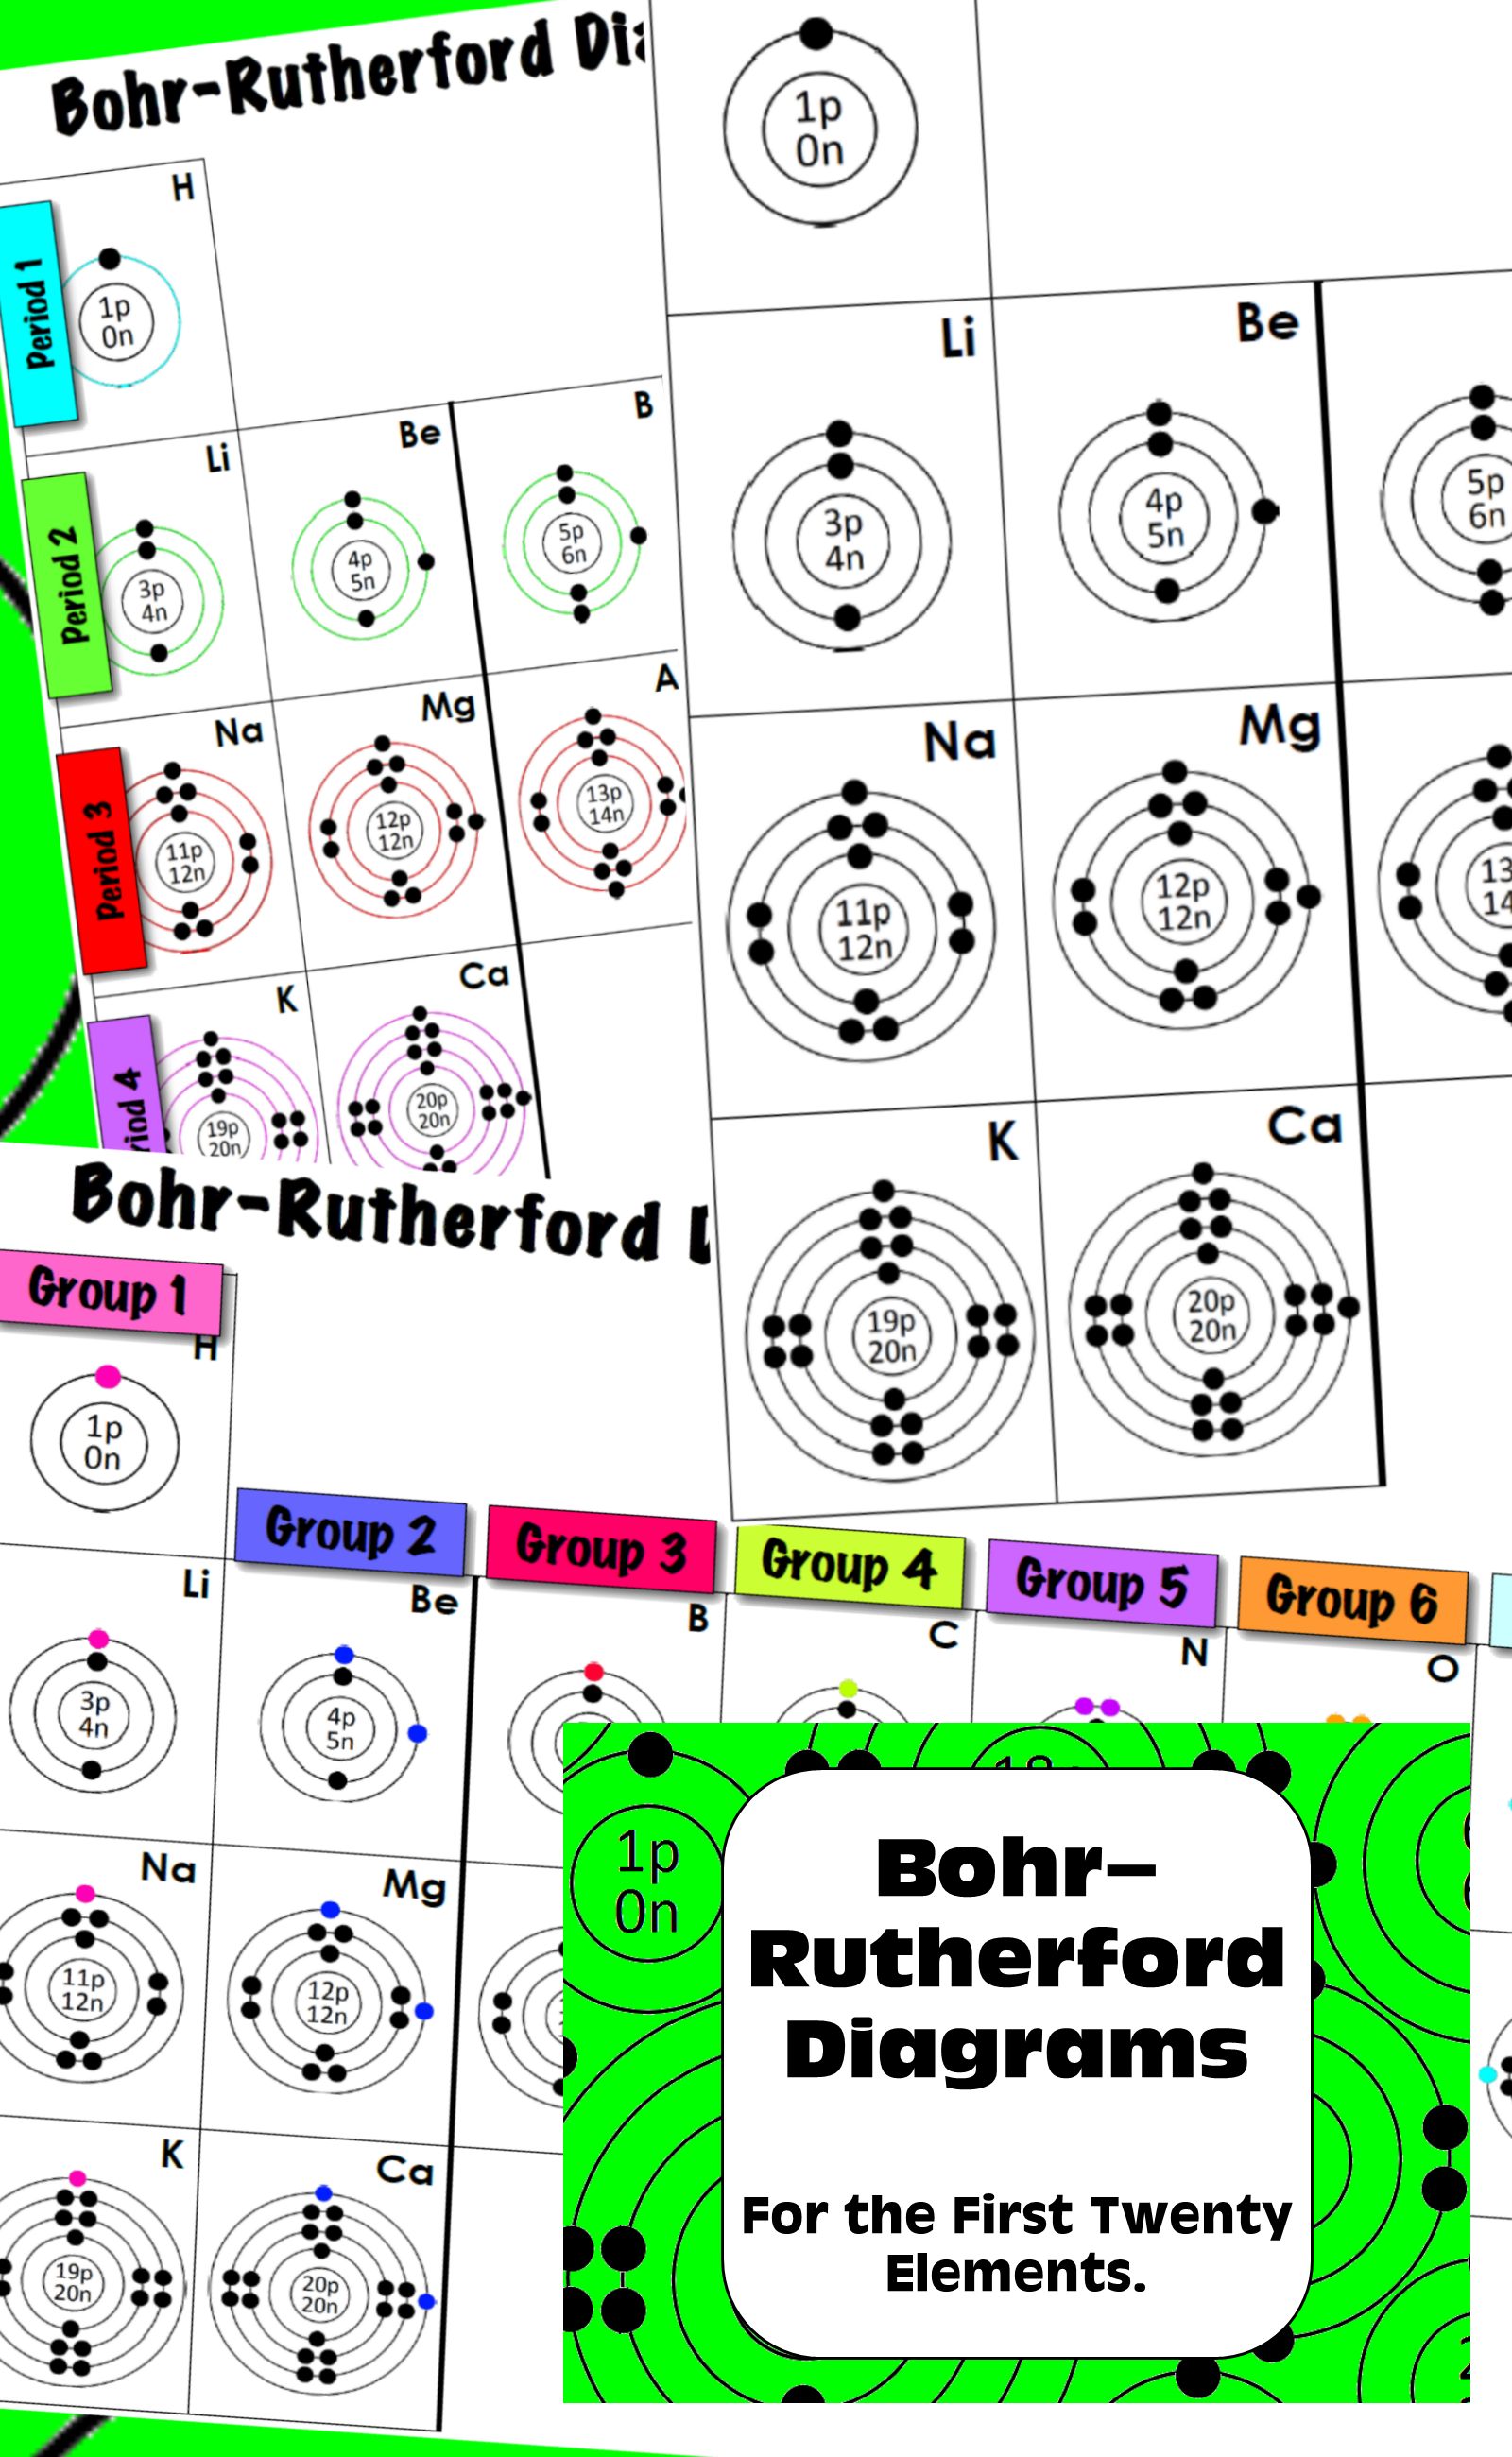 what is a bohr rutherford diagram plc wiring models diagrams for the first twenty